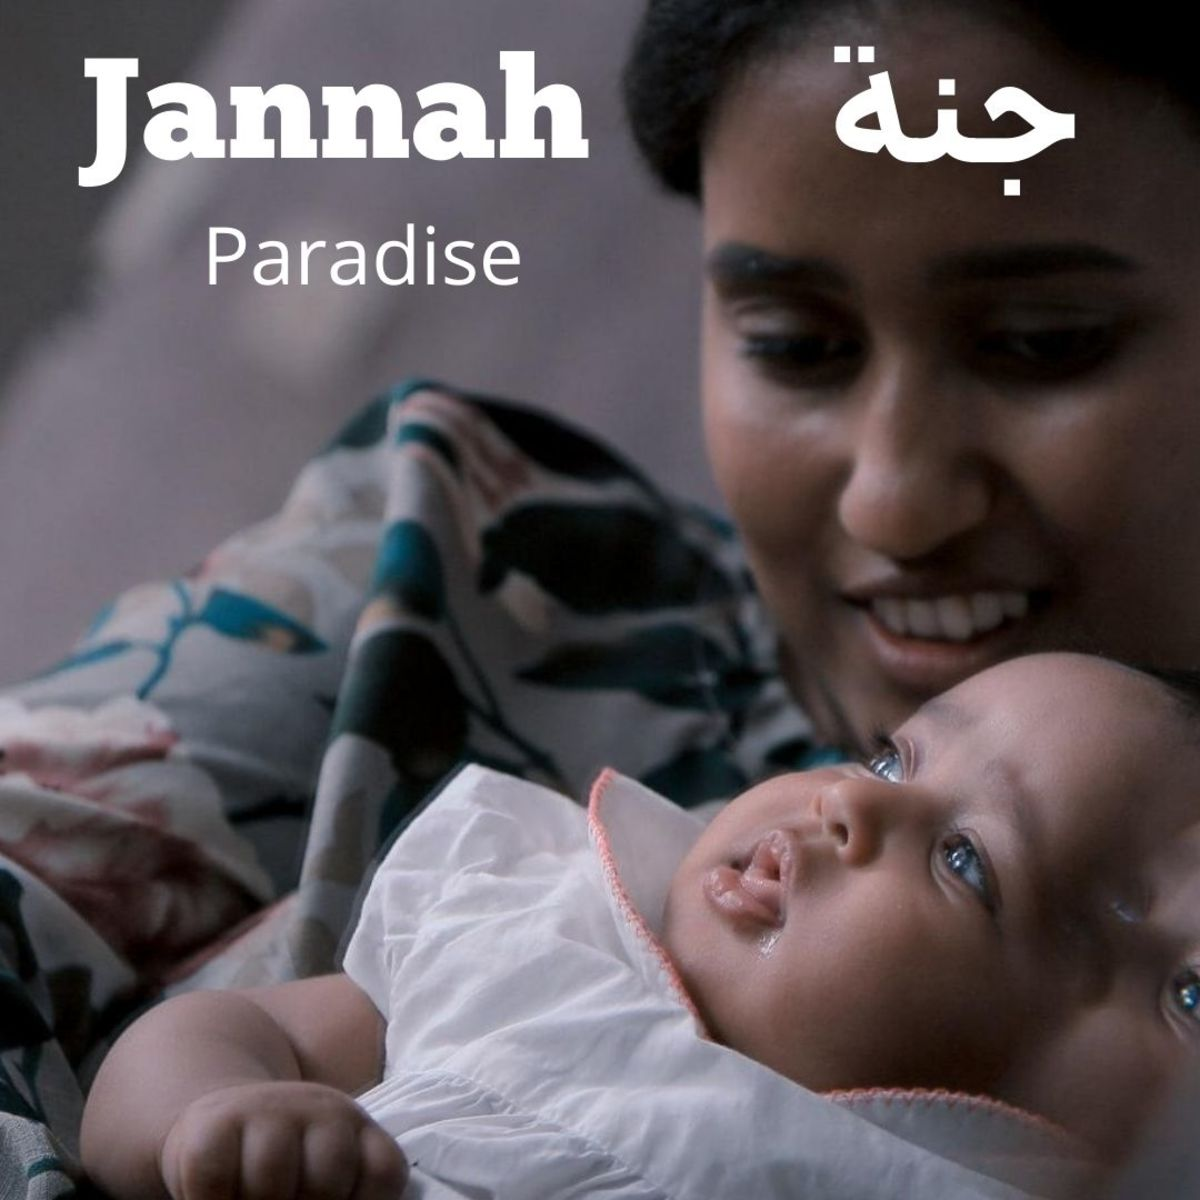 Janna is a name from the Qur'an.